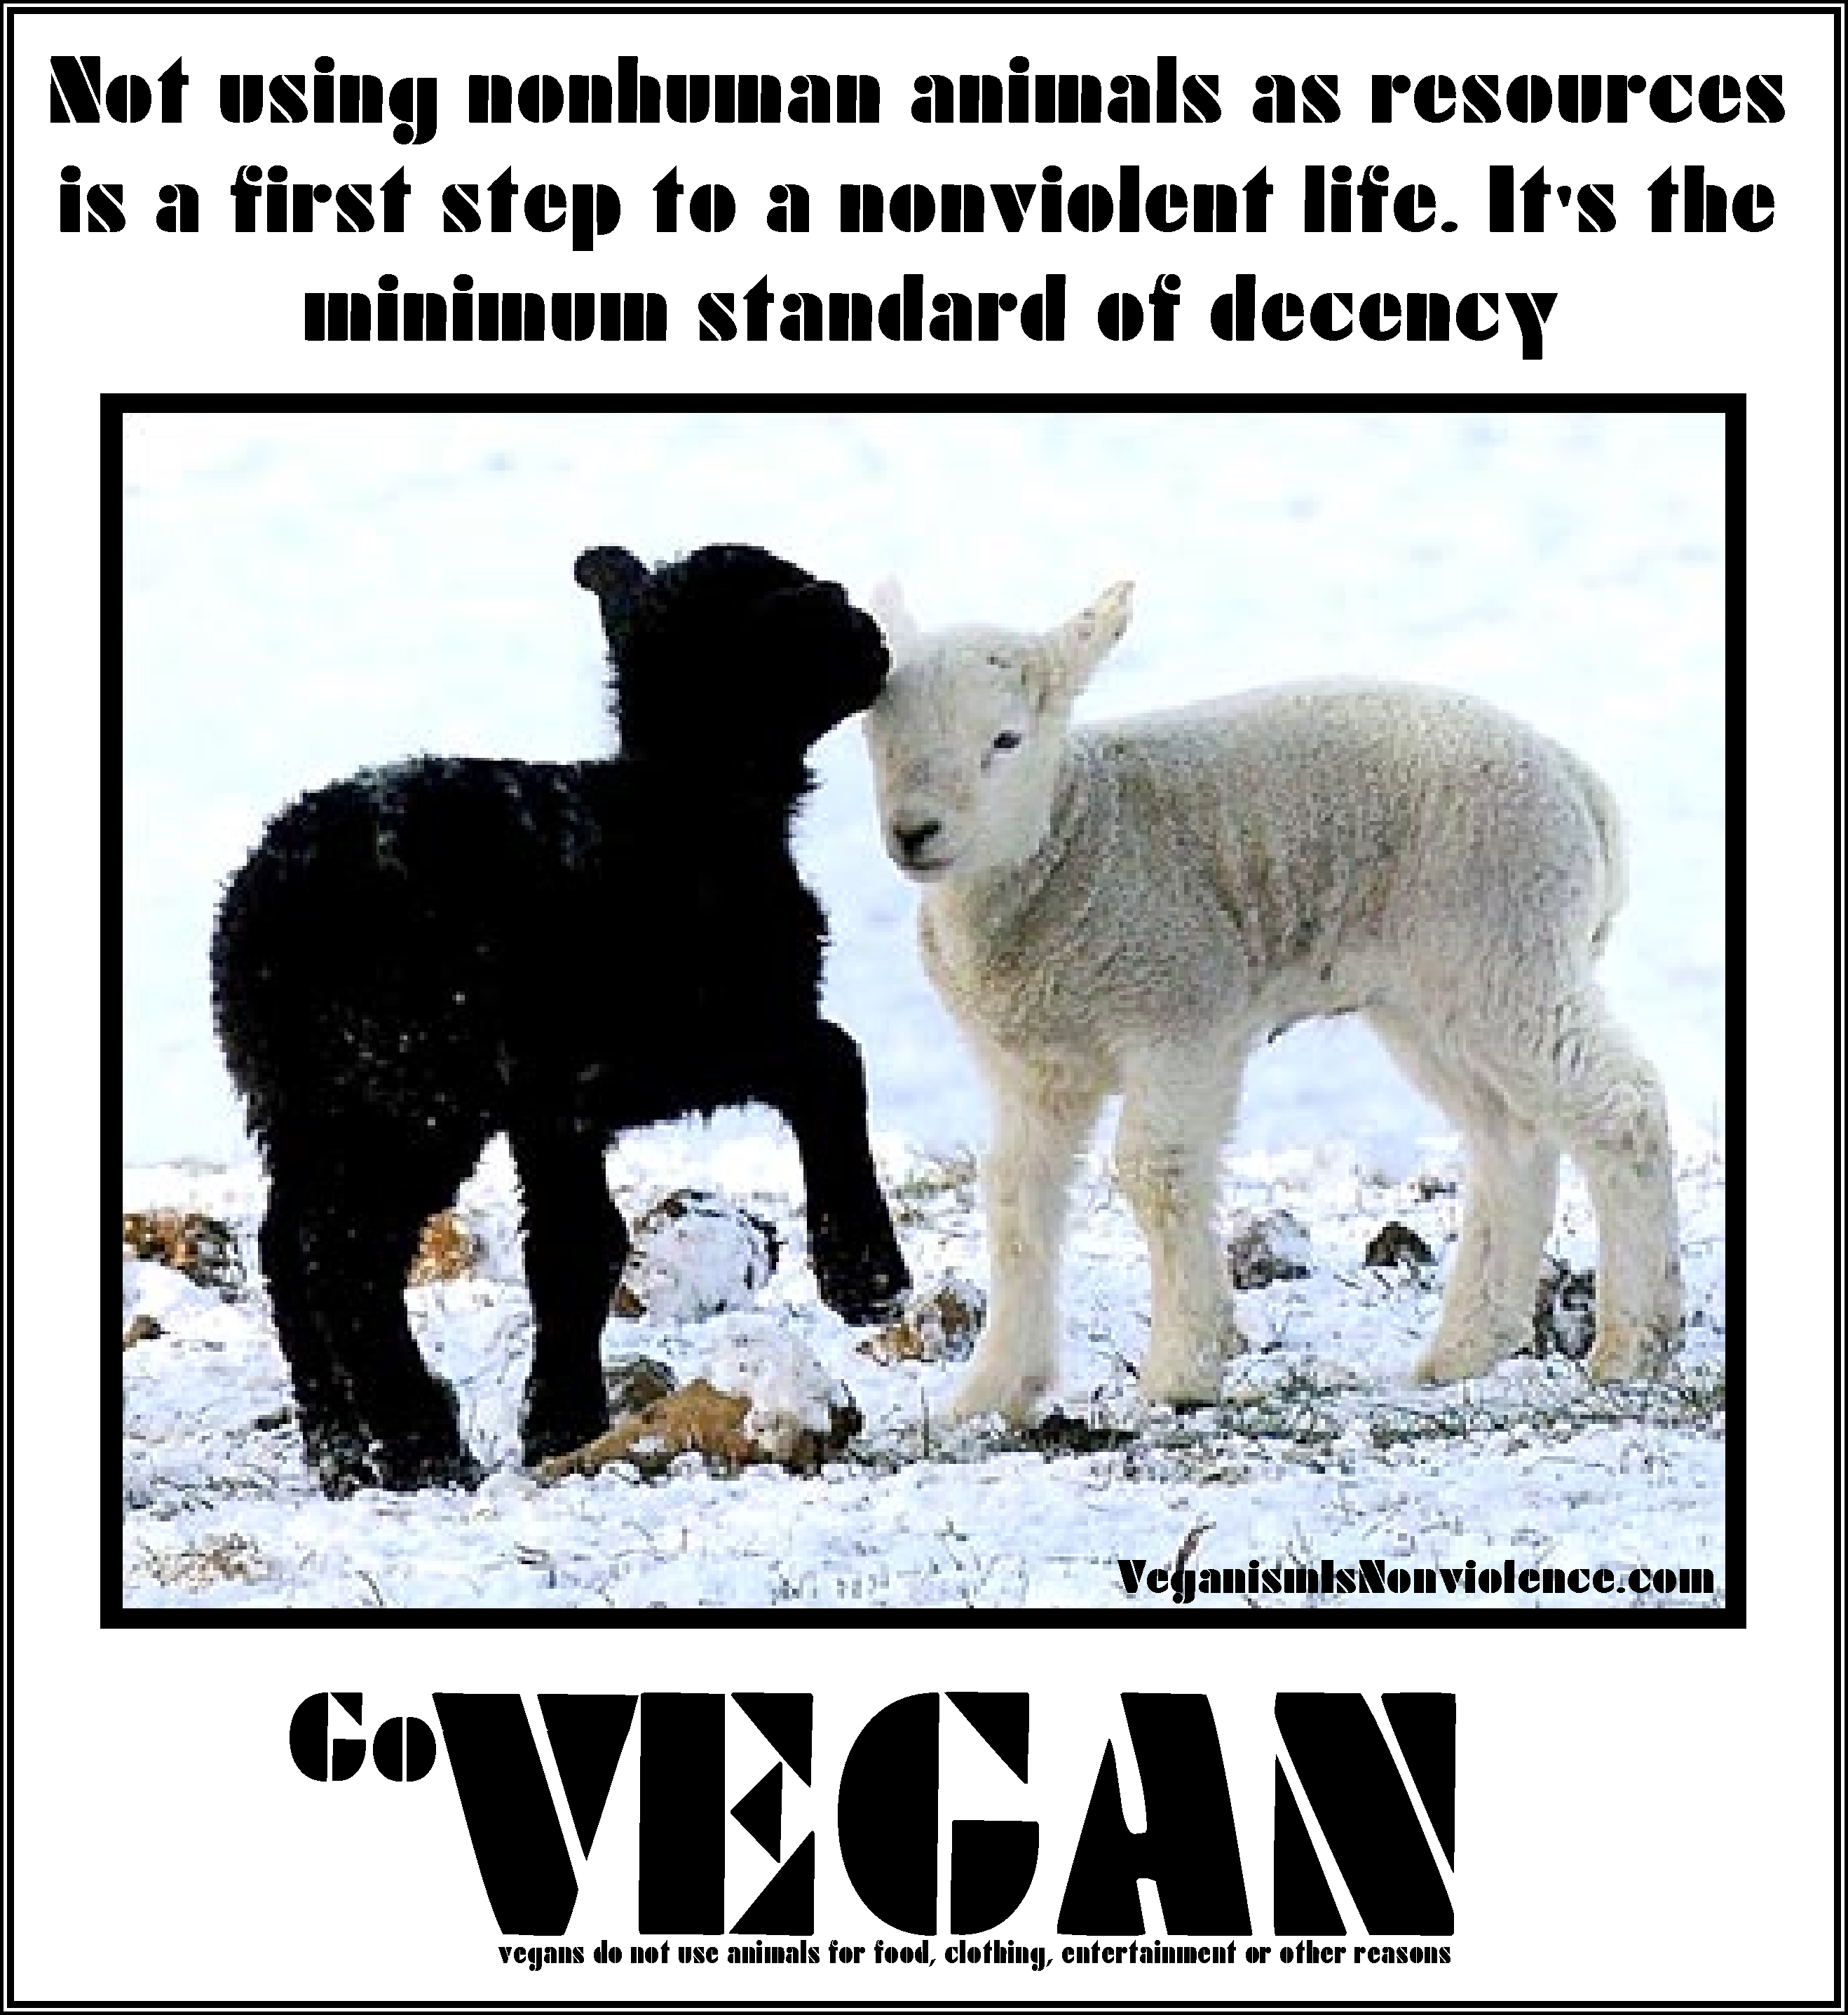 social justice veganism is nonviolence not using animals